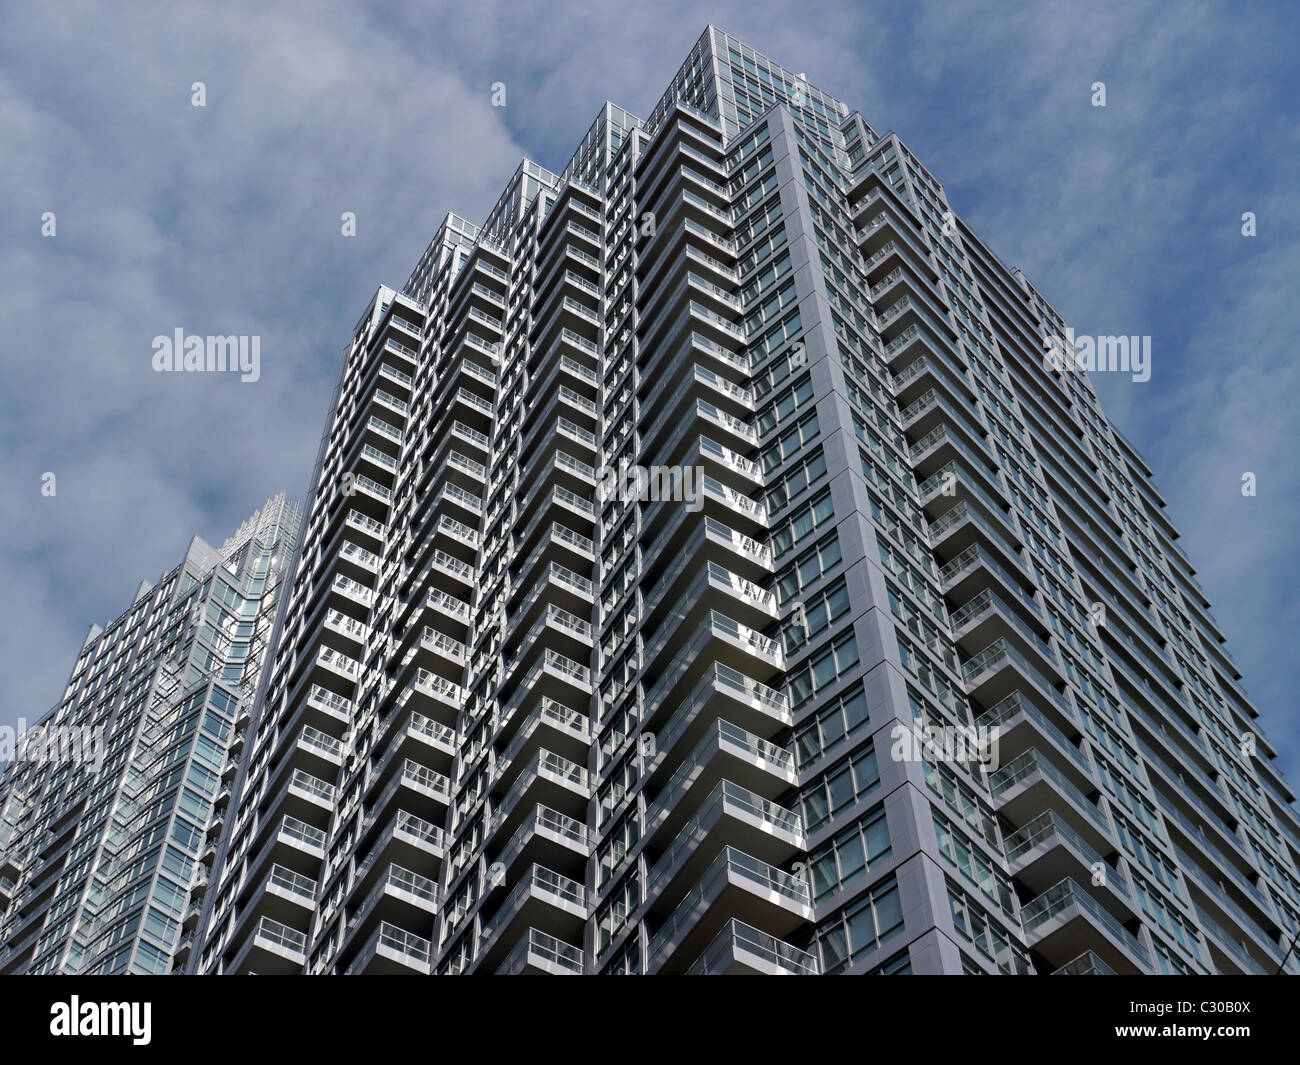 Modern high rise condominium apartment building - Stock Image